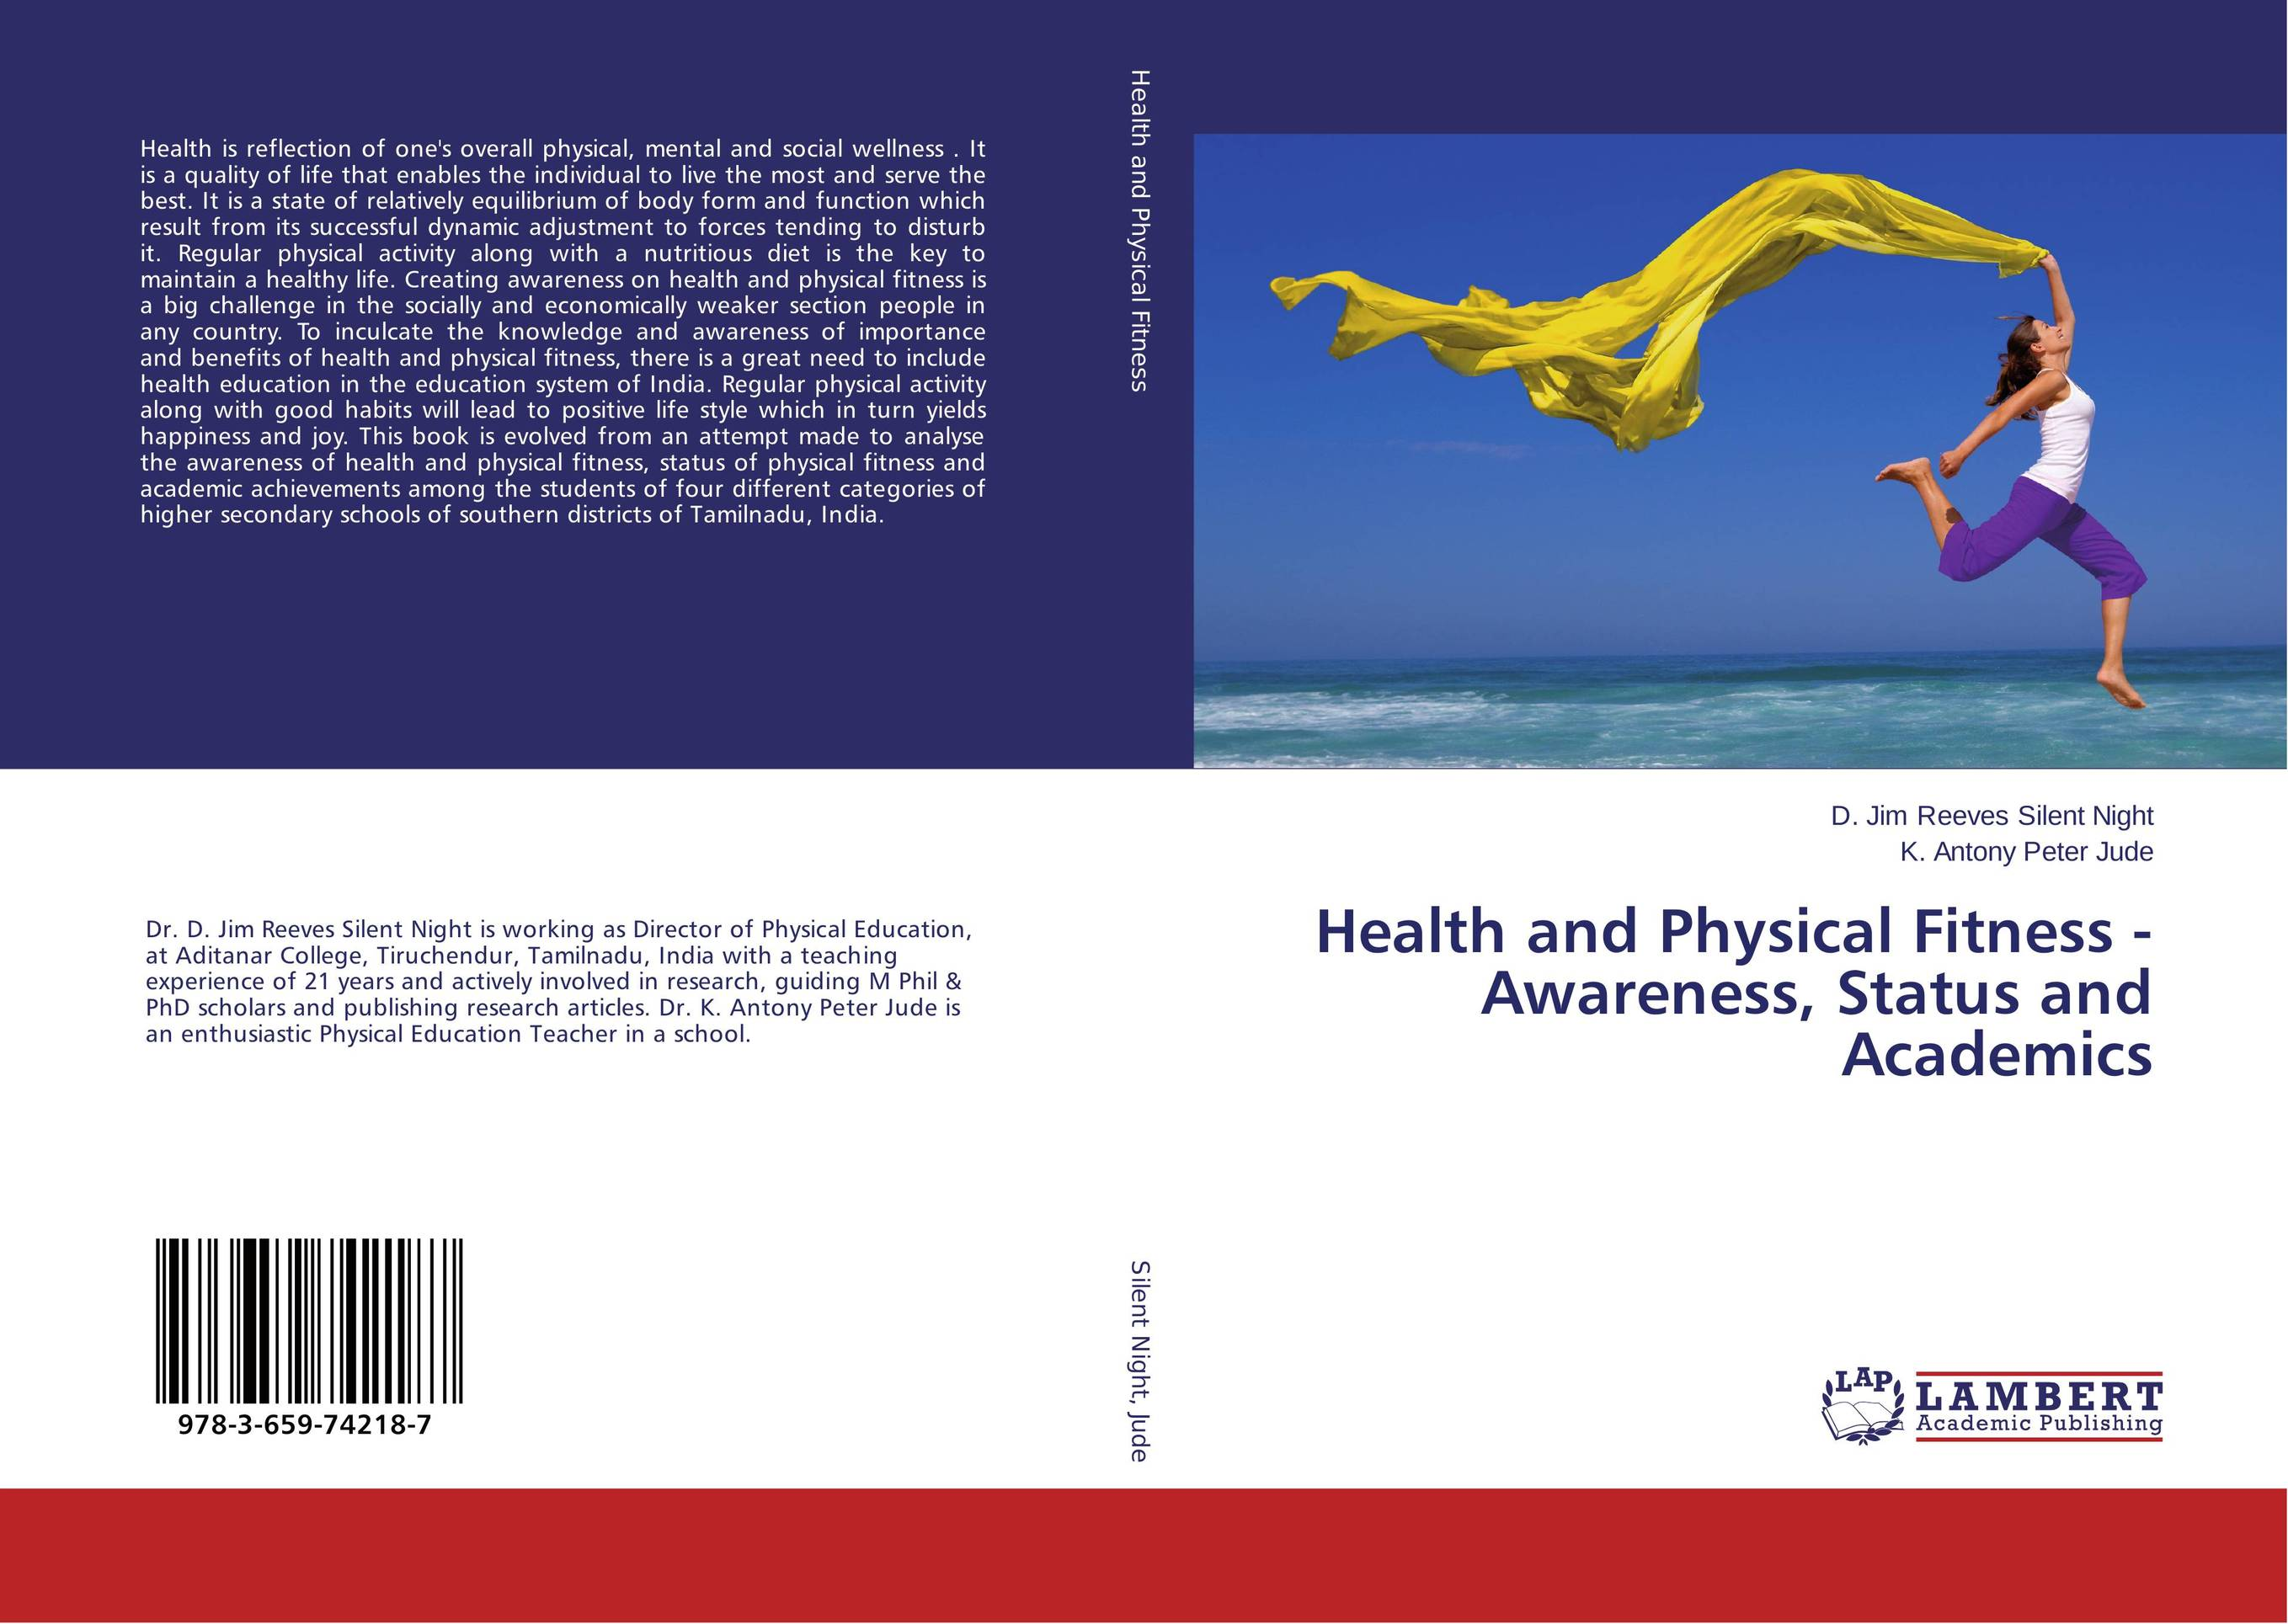 Health and Physical Fitness - Awareness, Status and Academics health awareness among continuing education workers